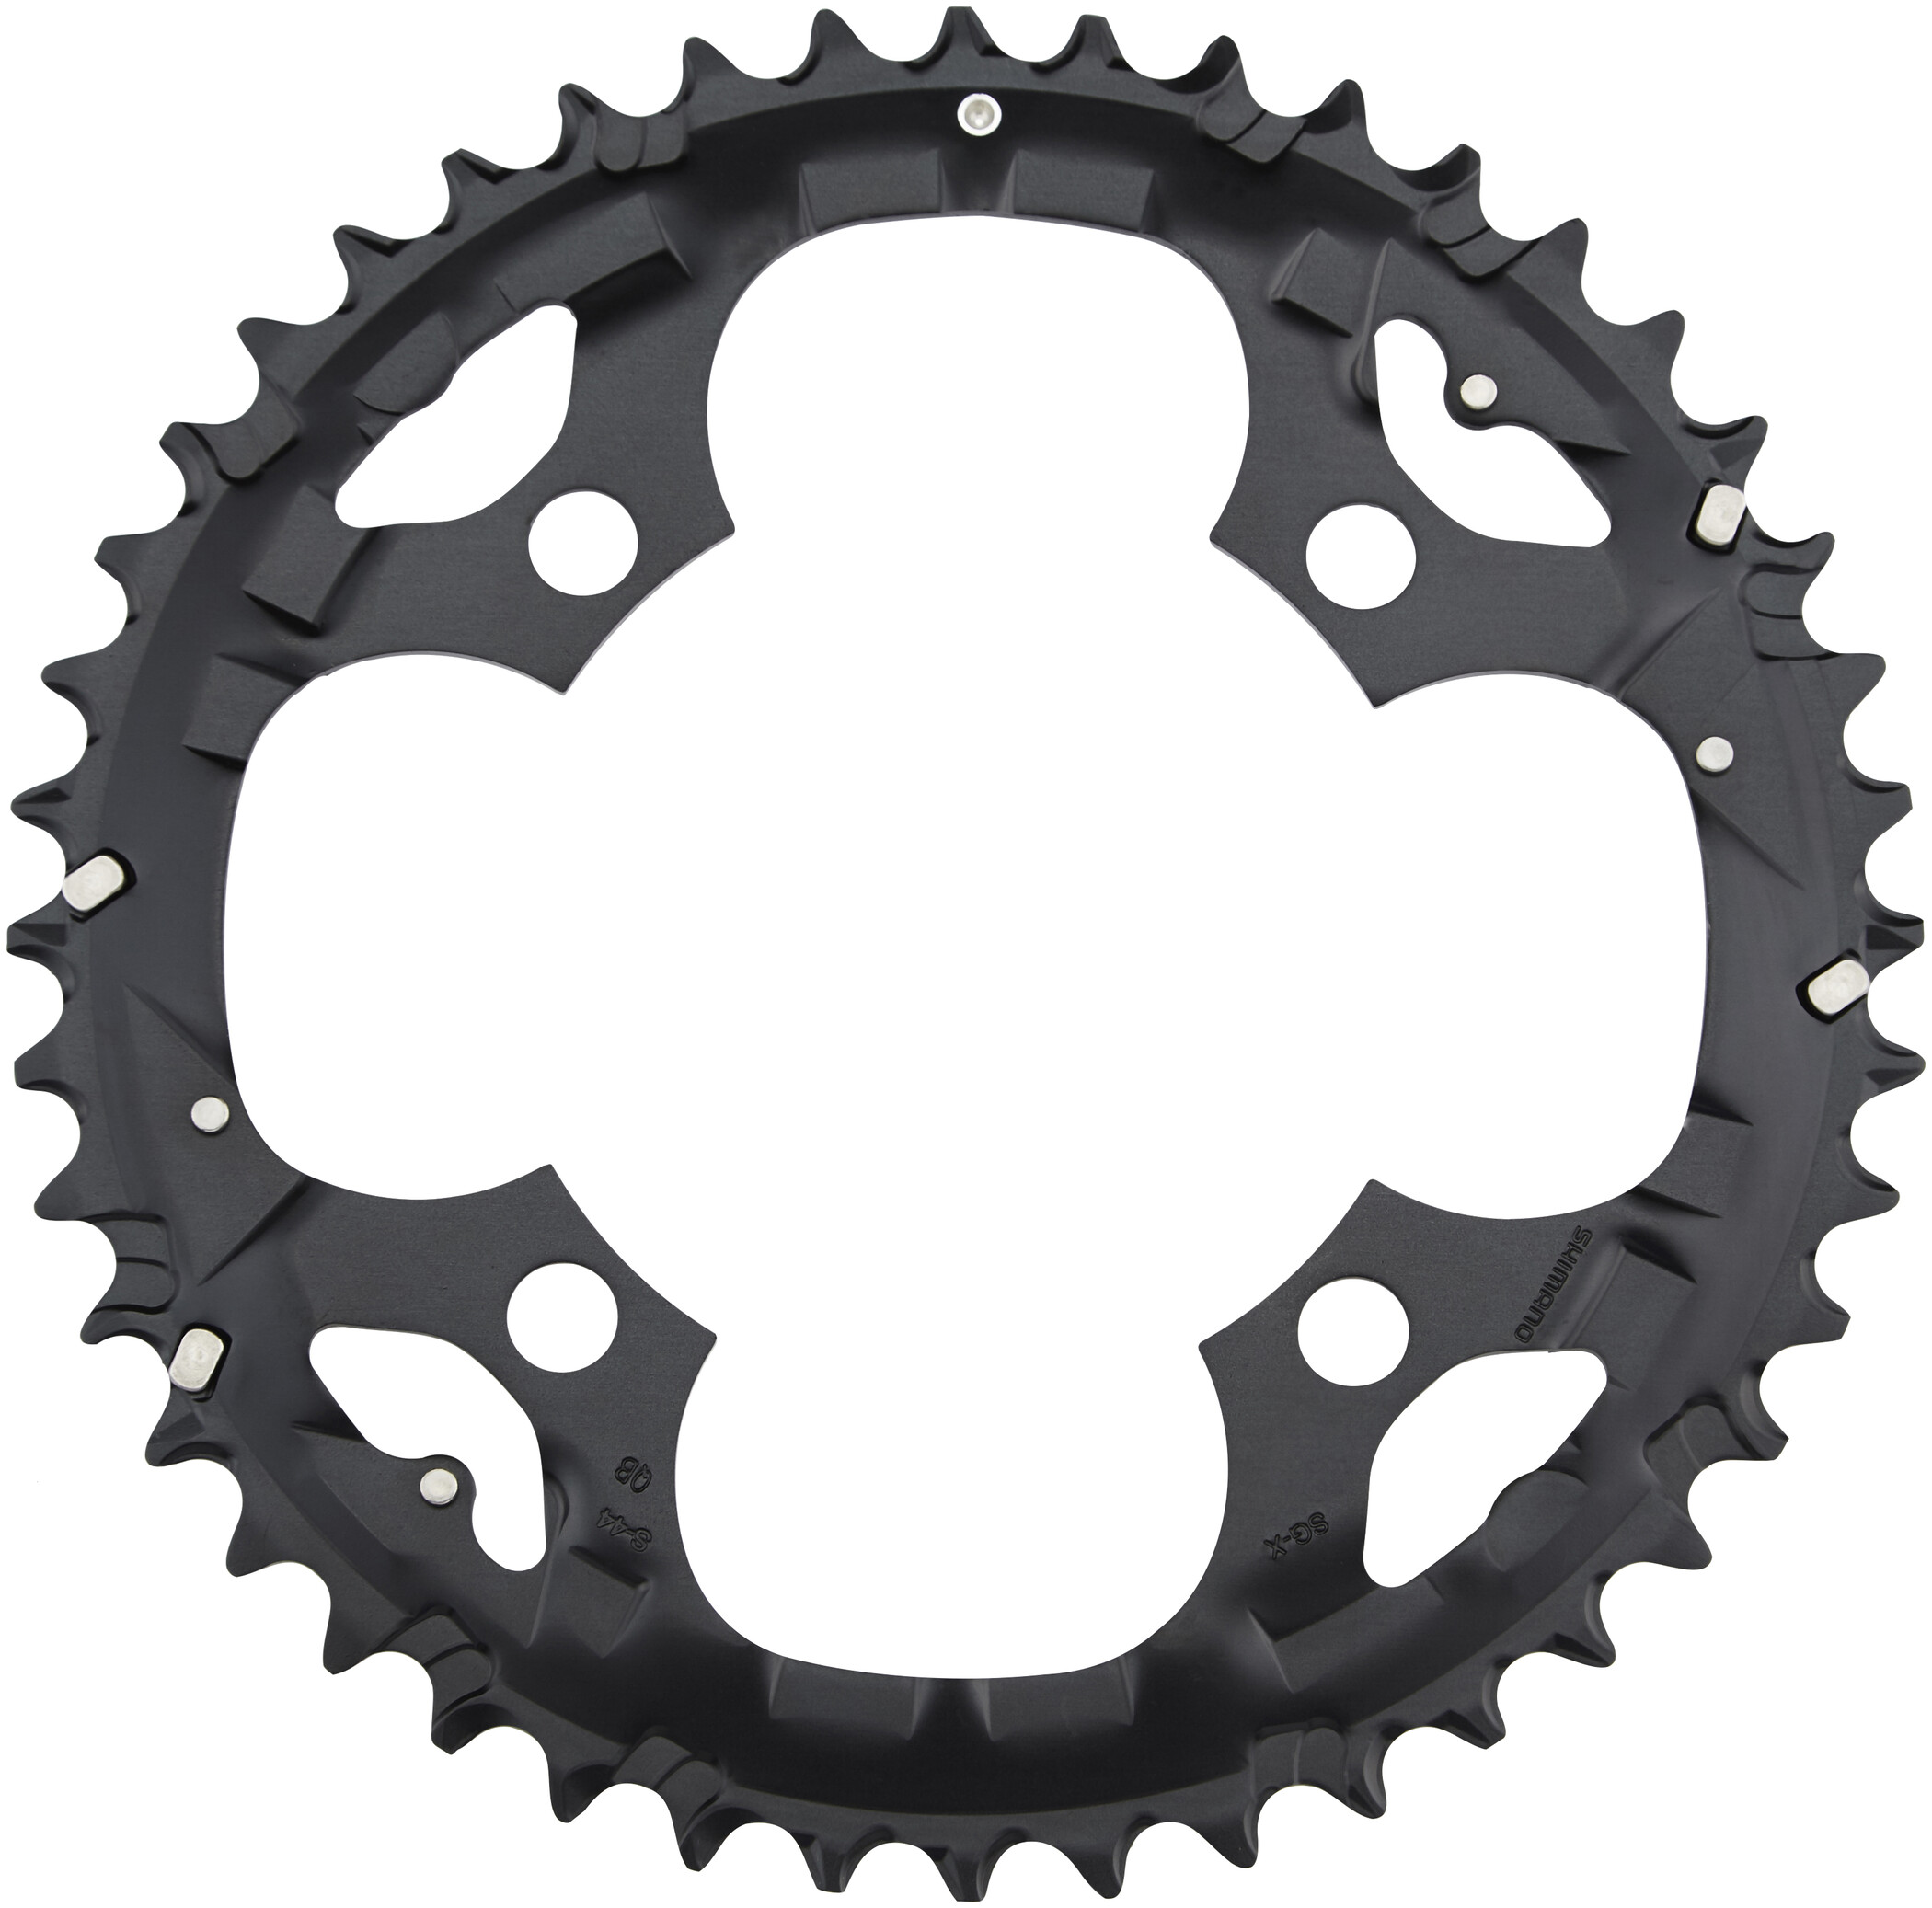 Shimano Deore FC-M590 Chain Ring 44 Cogs, black (2019) | chainrings_component